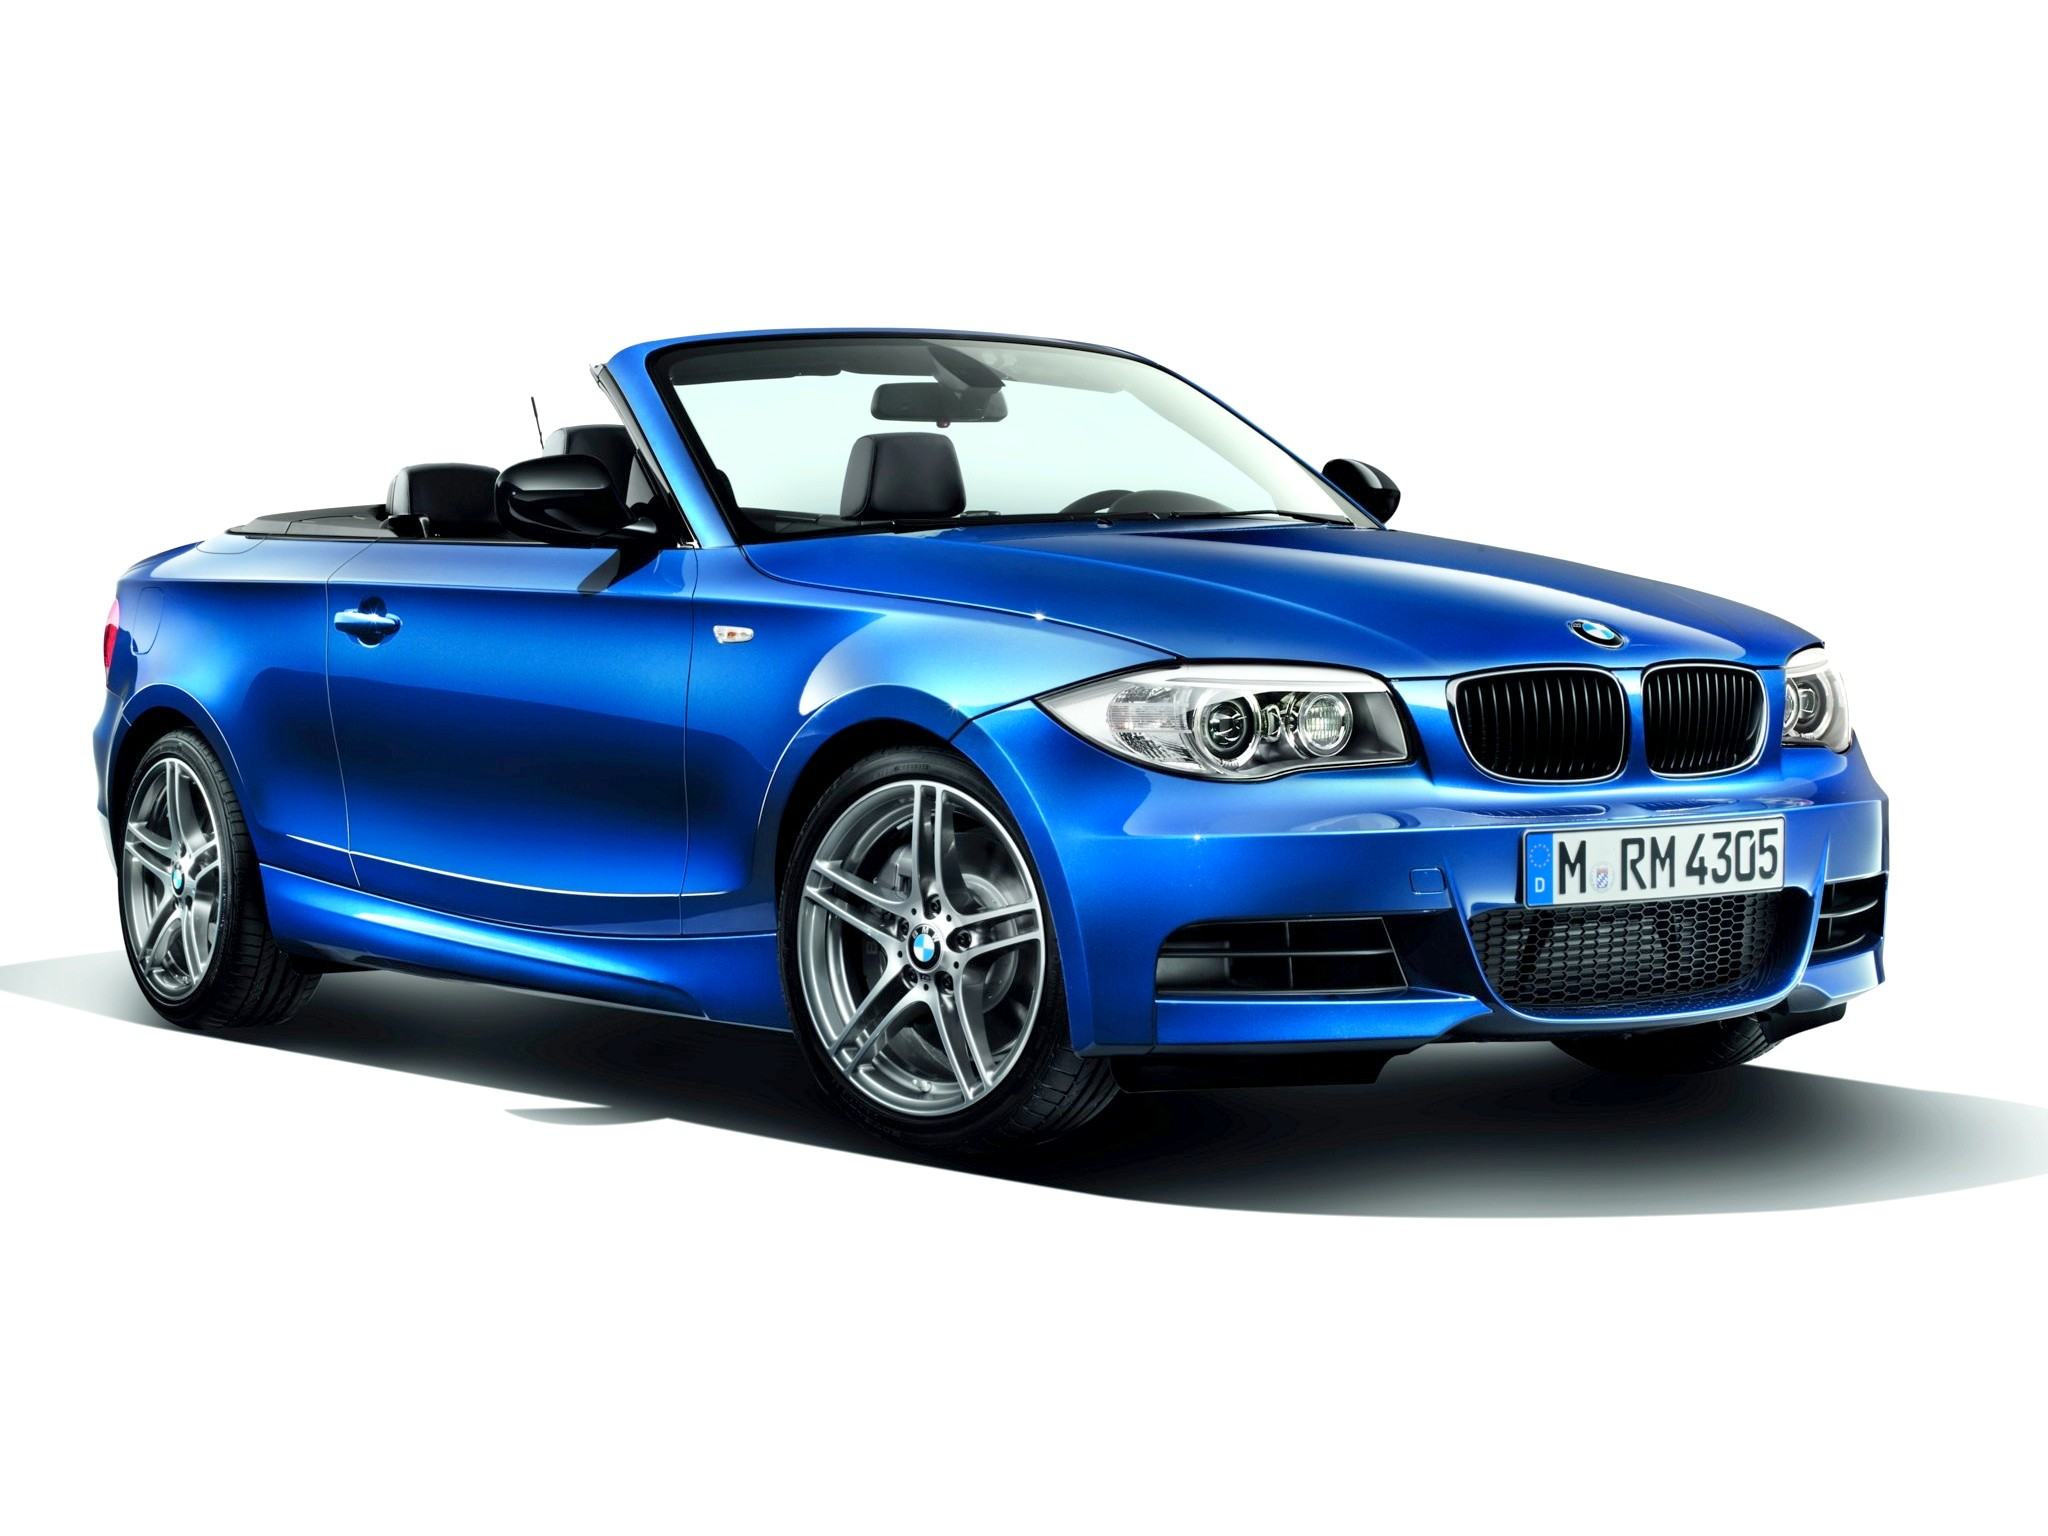 2019 BMW 1 Series Cabrio photo - 2